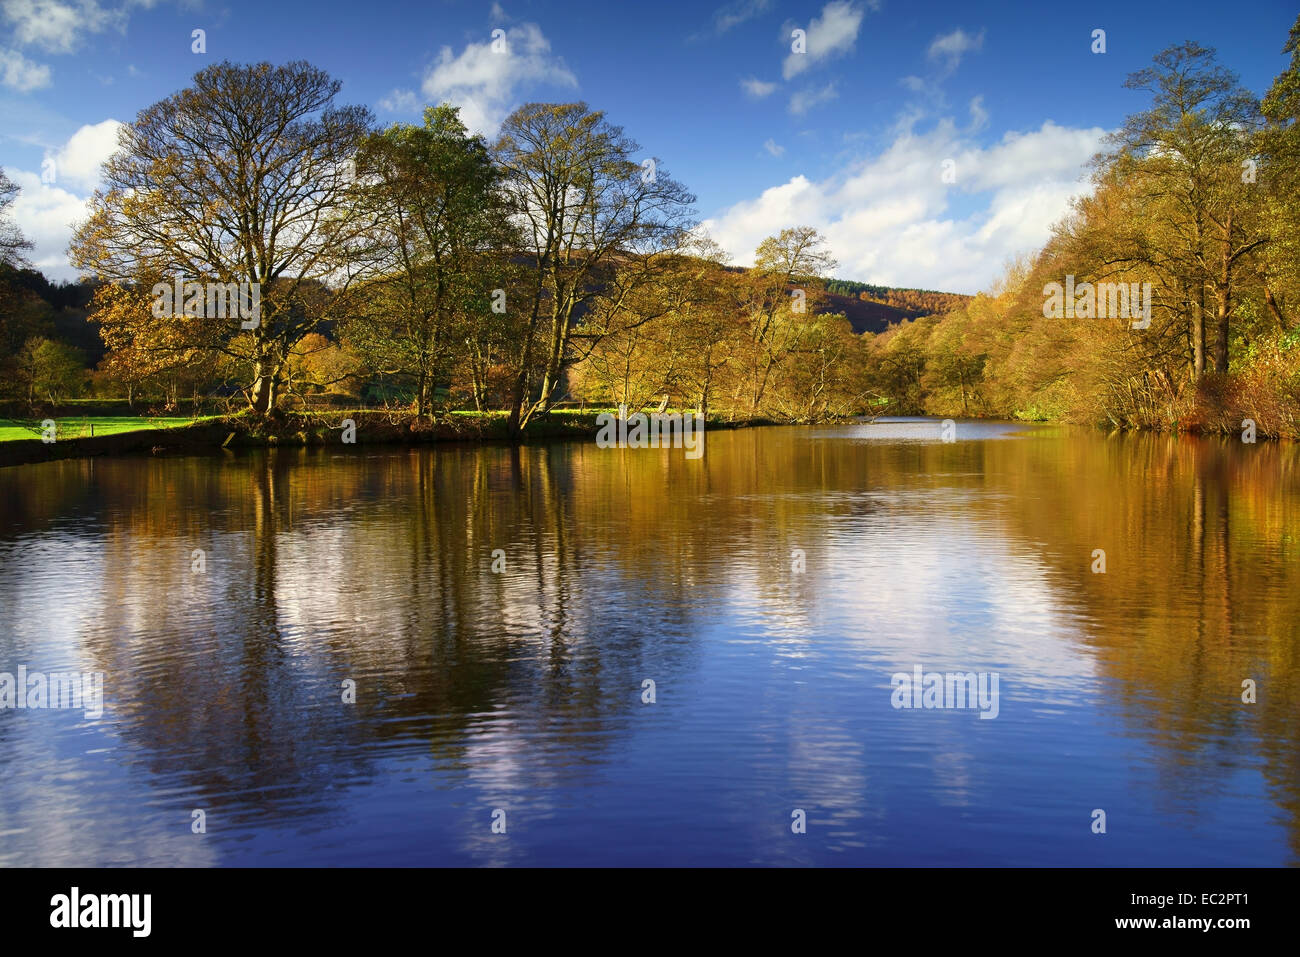 UK, Derbyshire, Peak District, Bamford, River Derwent Reflexionen Stockbild